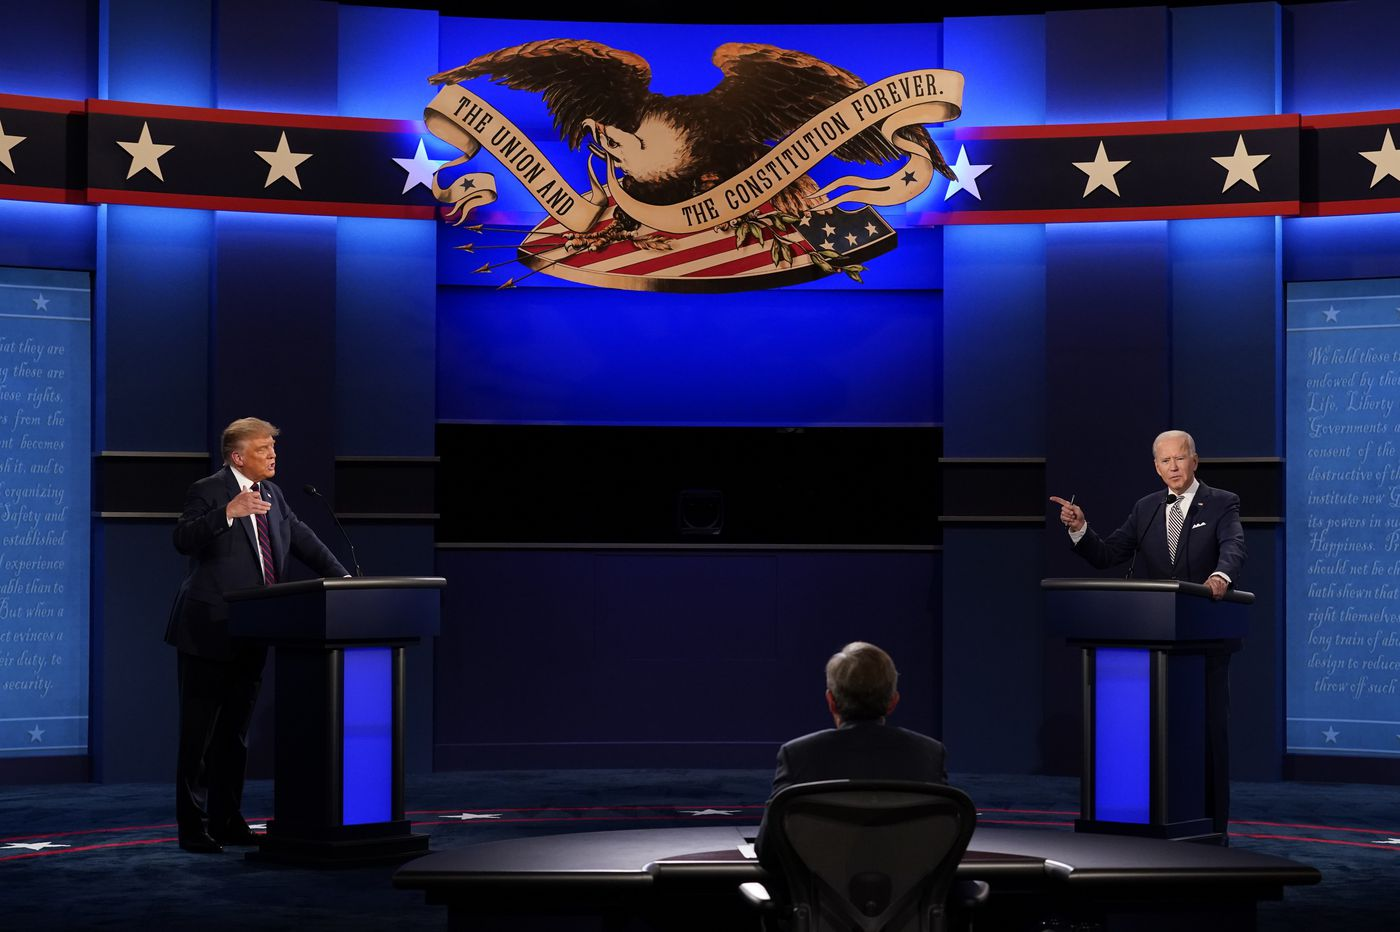 Trump's taunts overshadow his, Biden's visions during first debate